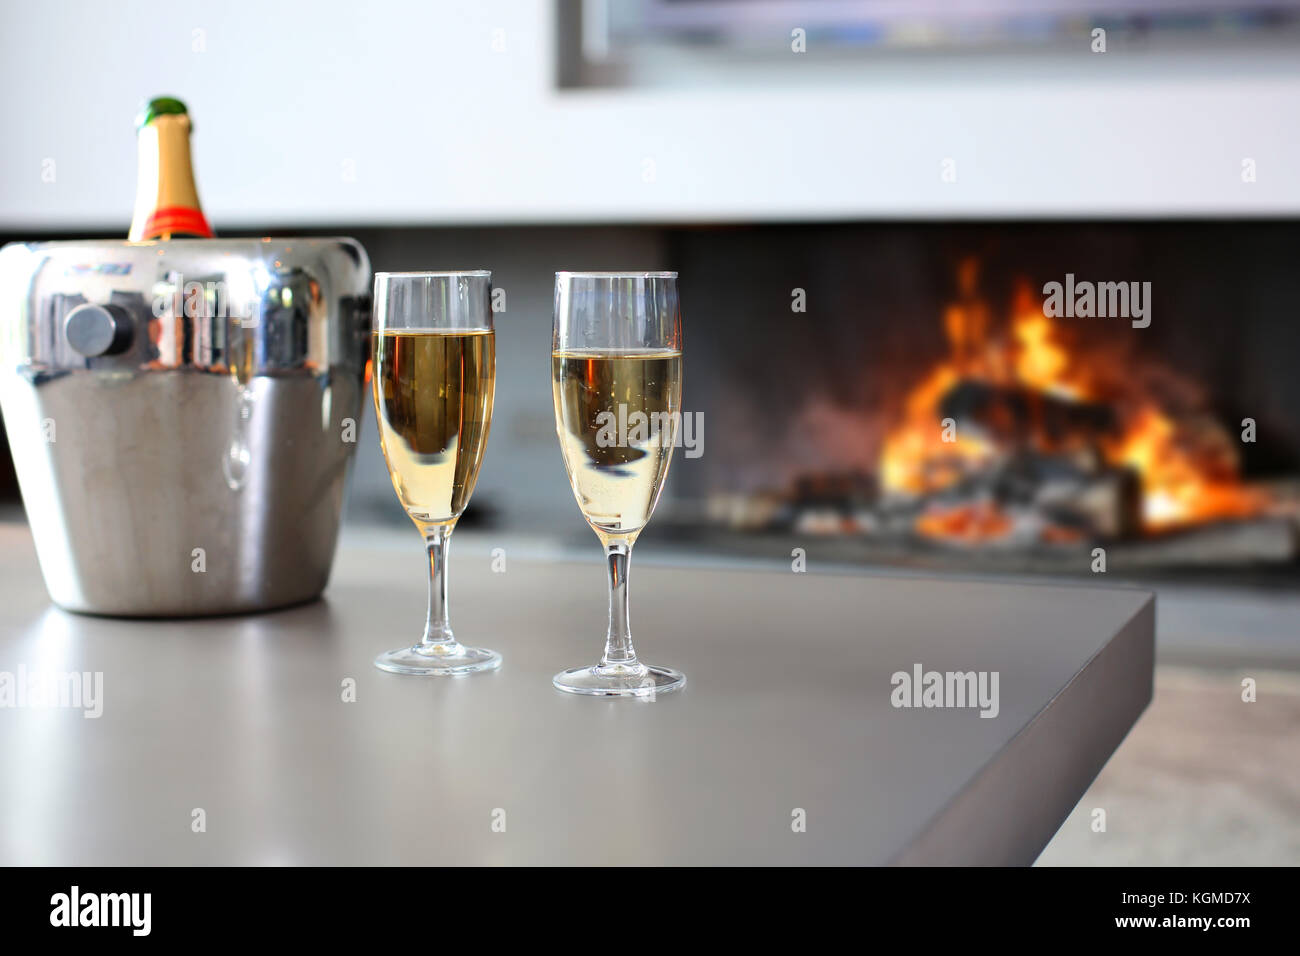 Closeup of champaign glasses set by fireplace - Stock Image